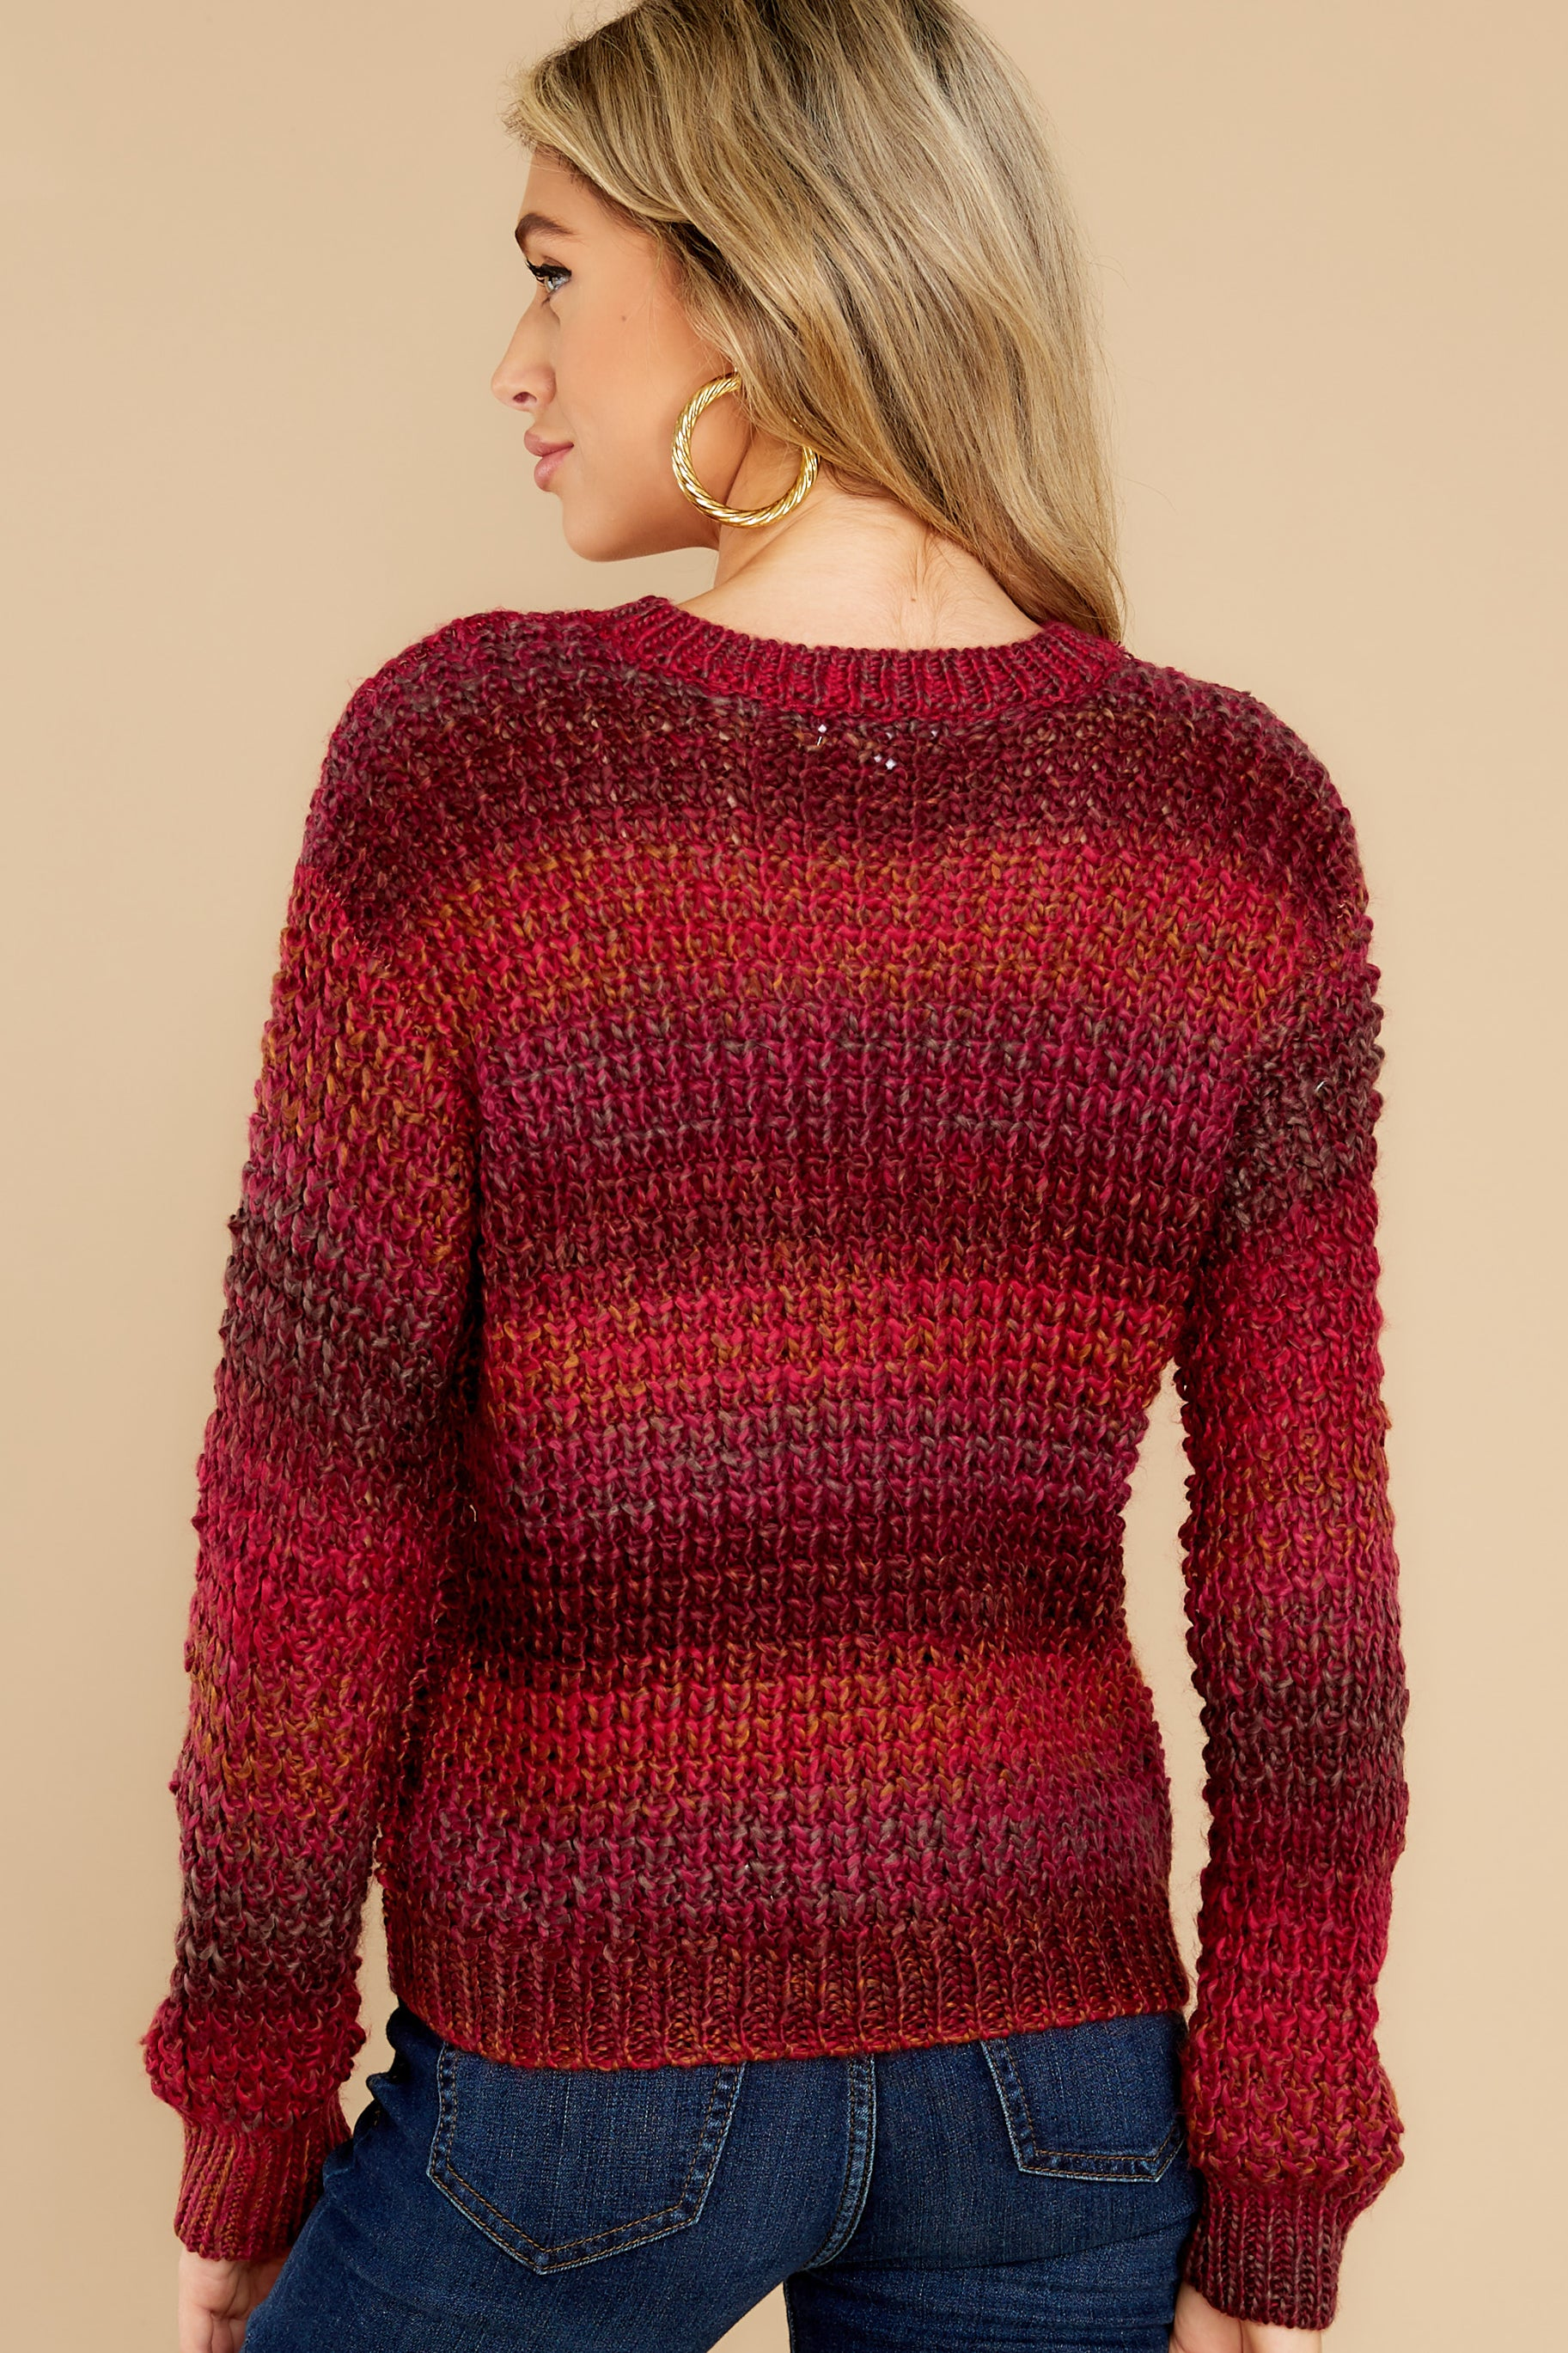 7 Catching Up Red Multi Knit Sweater at reddress.com